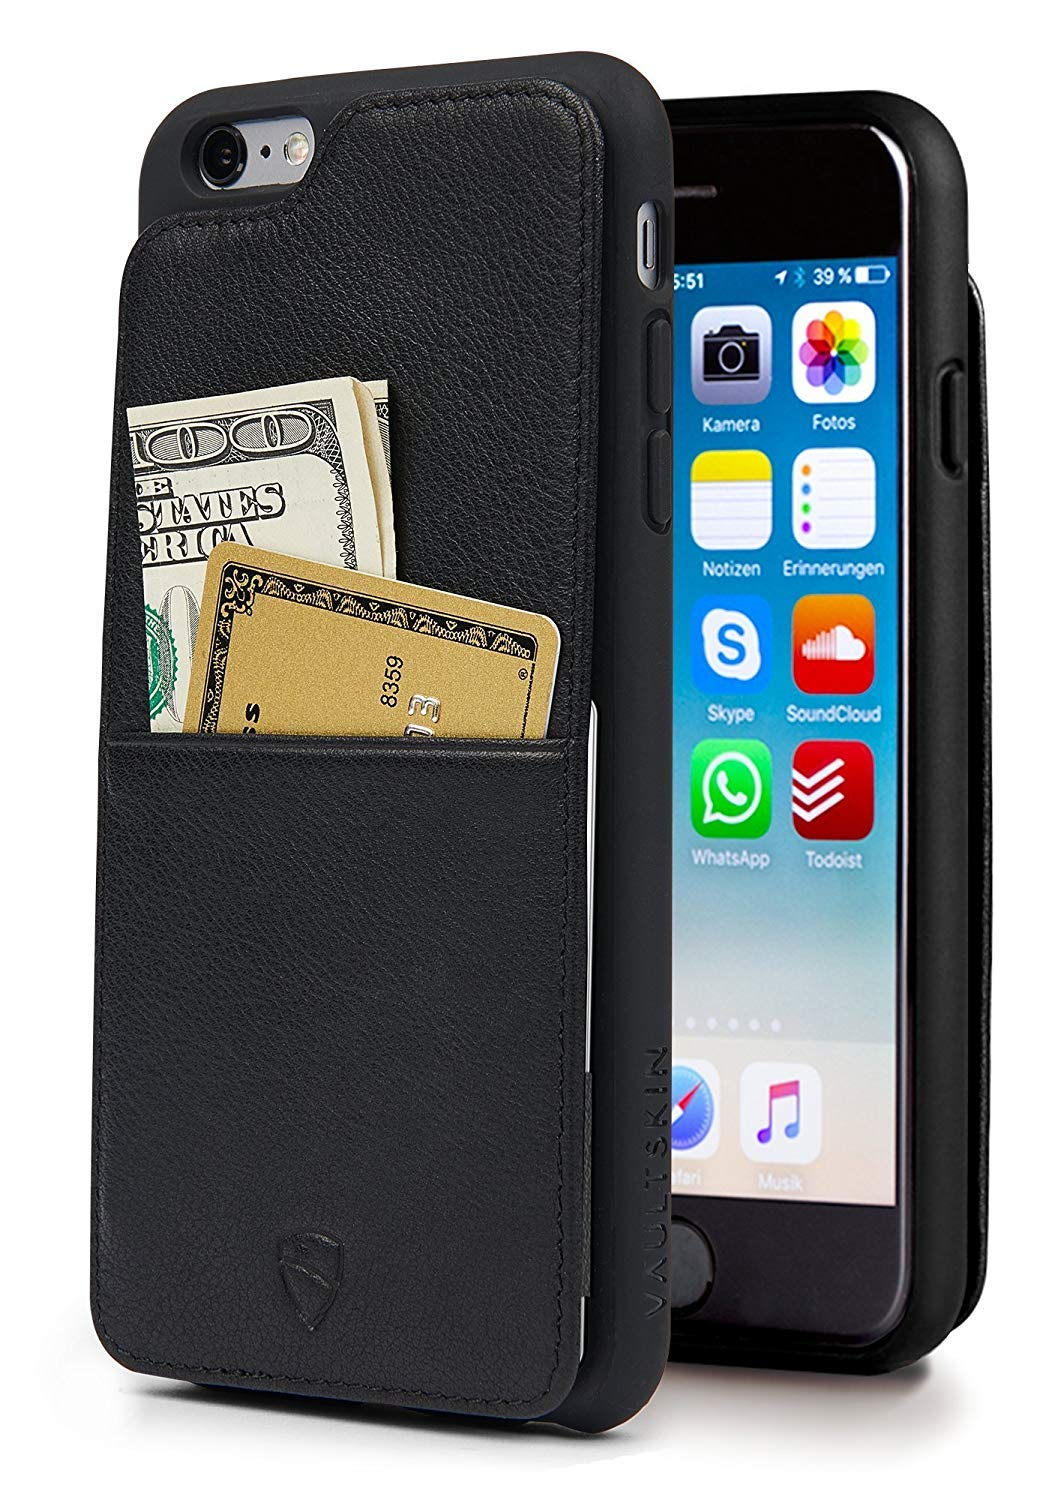 Vaultskin iPhone 6(S) Plus Case, Eton Armour iPhone 6(S) Plus (5.5) Case Wallet, Slim, Minimalist Genuiner Leather Case - Holds up to 8 Cards/Top Grain Leather (Black)